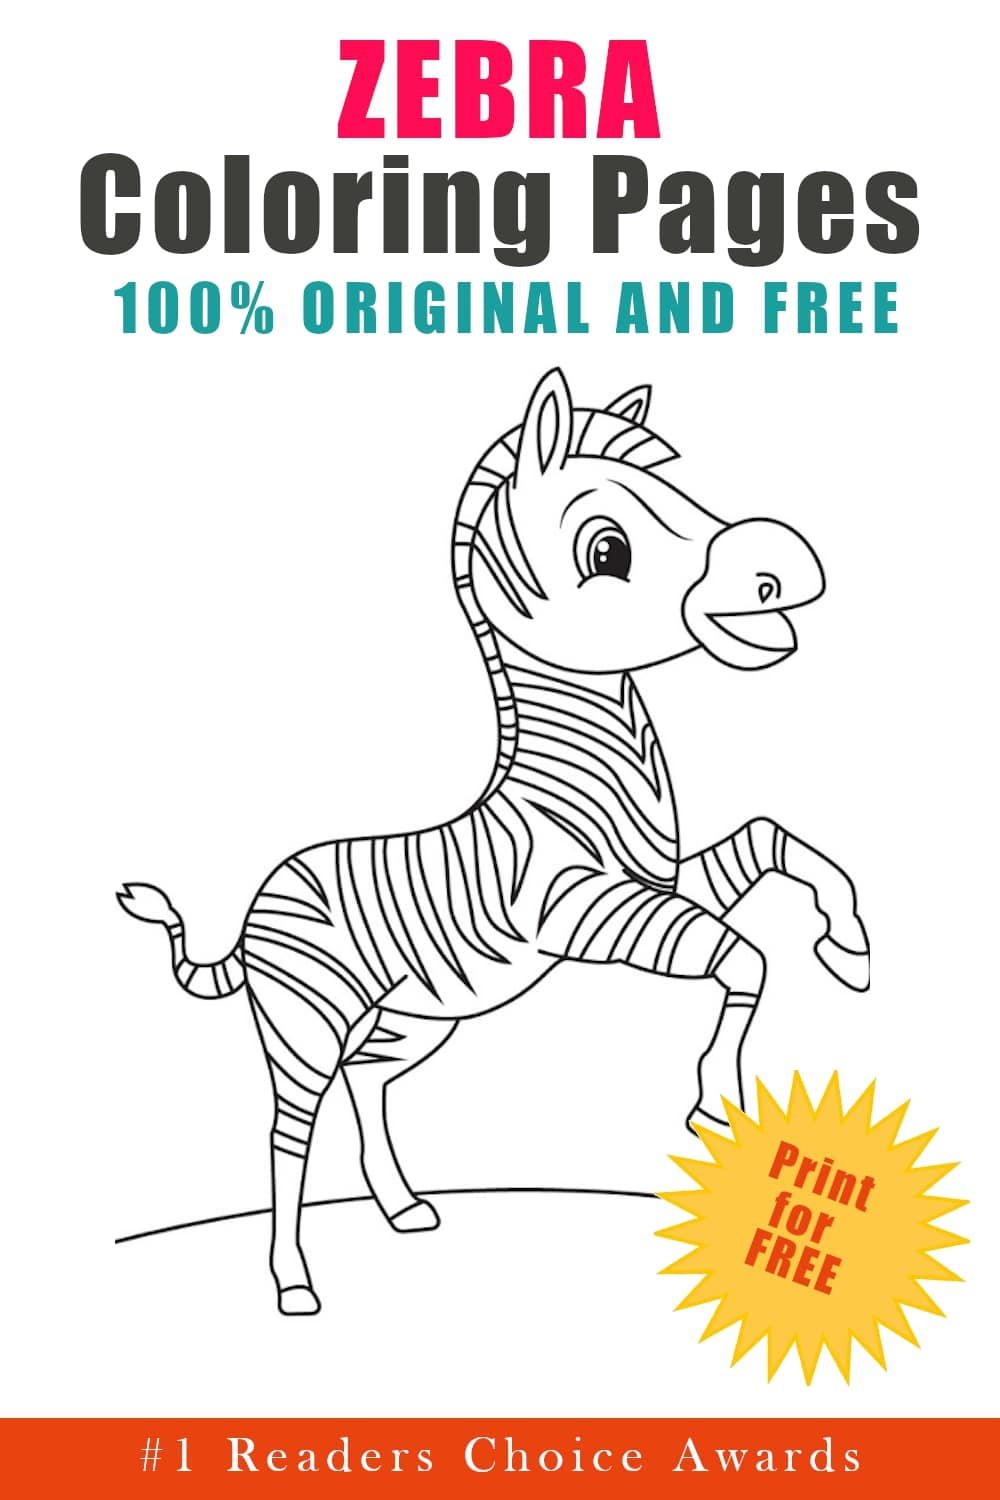 original and free zebra coloring pages